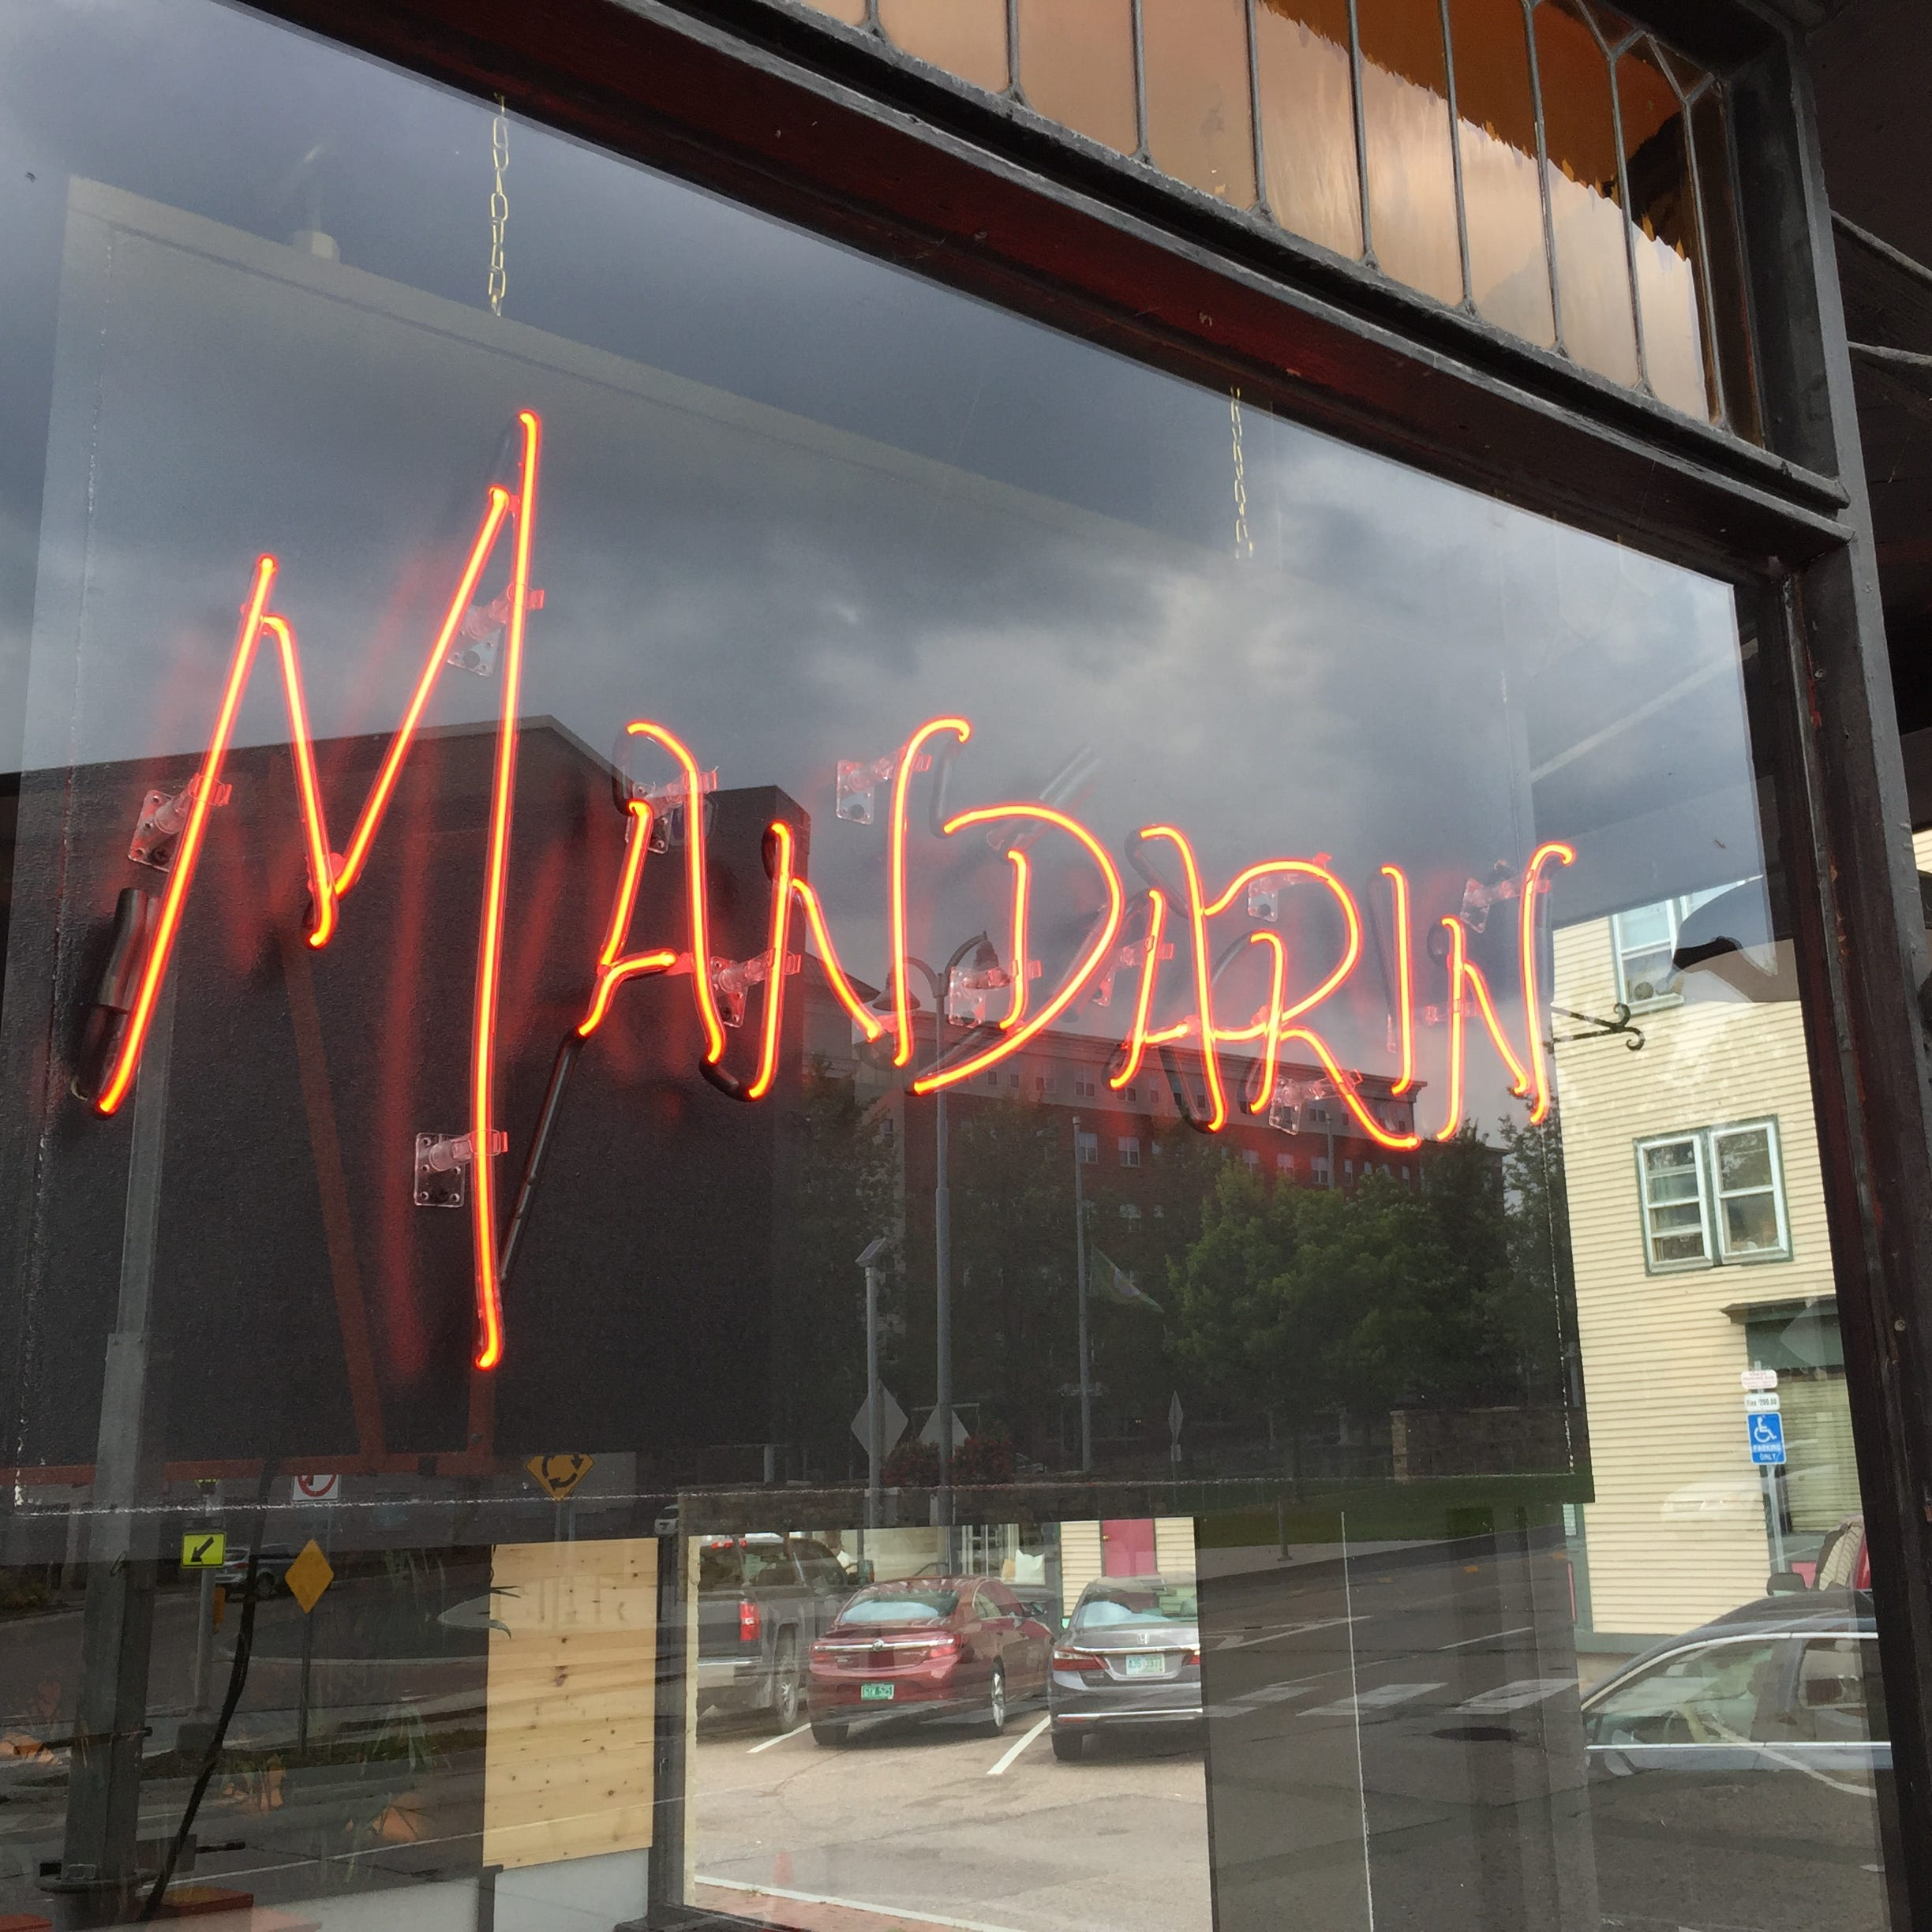 New-but-old Chinese restaurant Mandarin opens on Main Street in Winooski